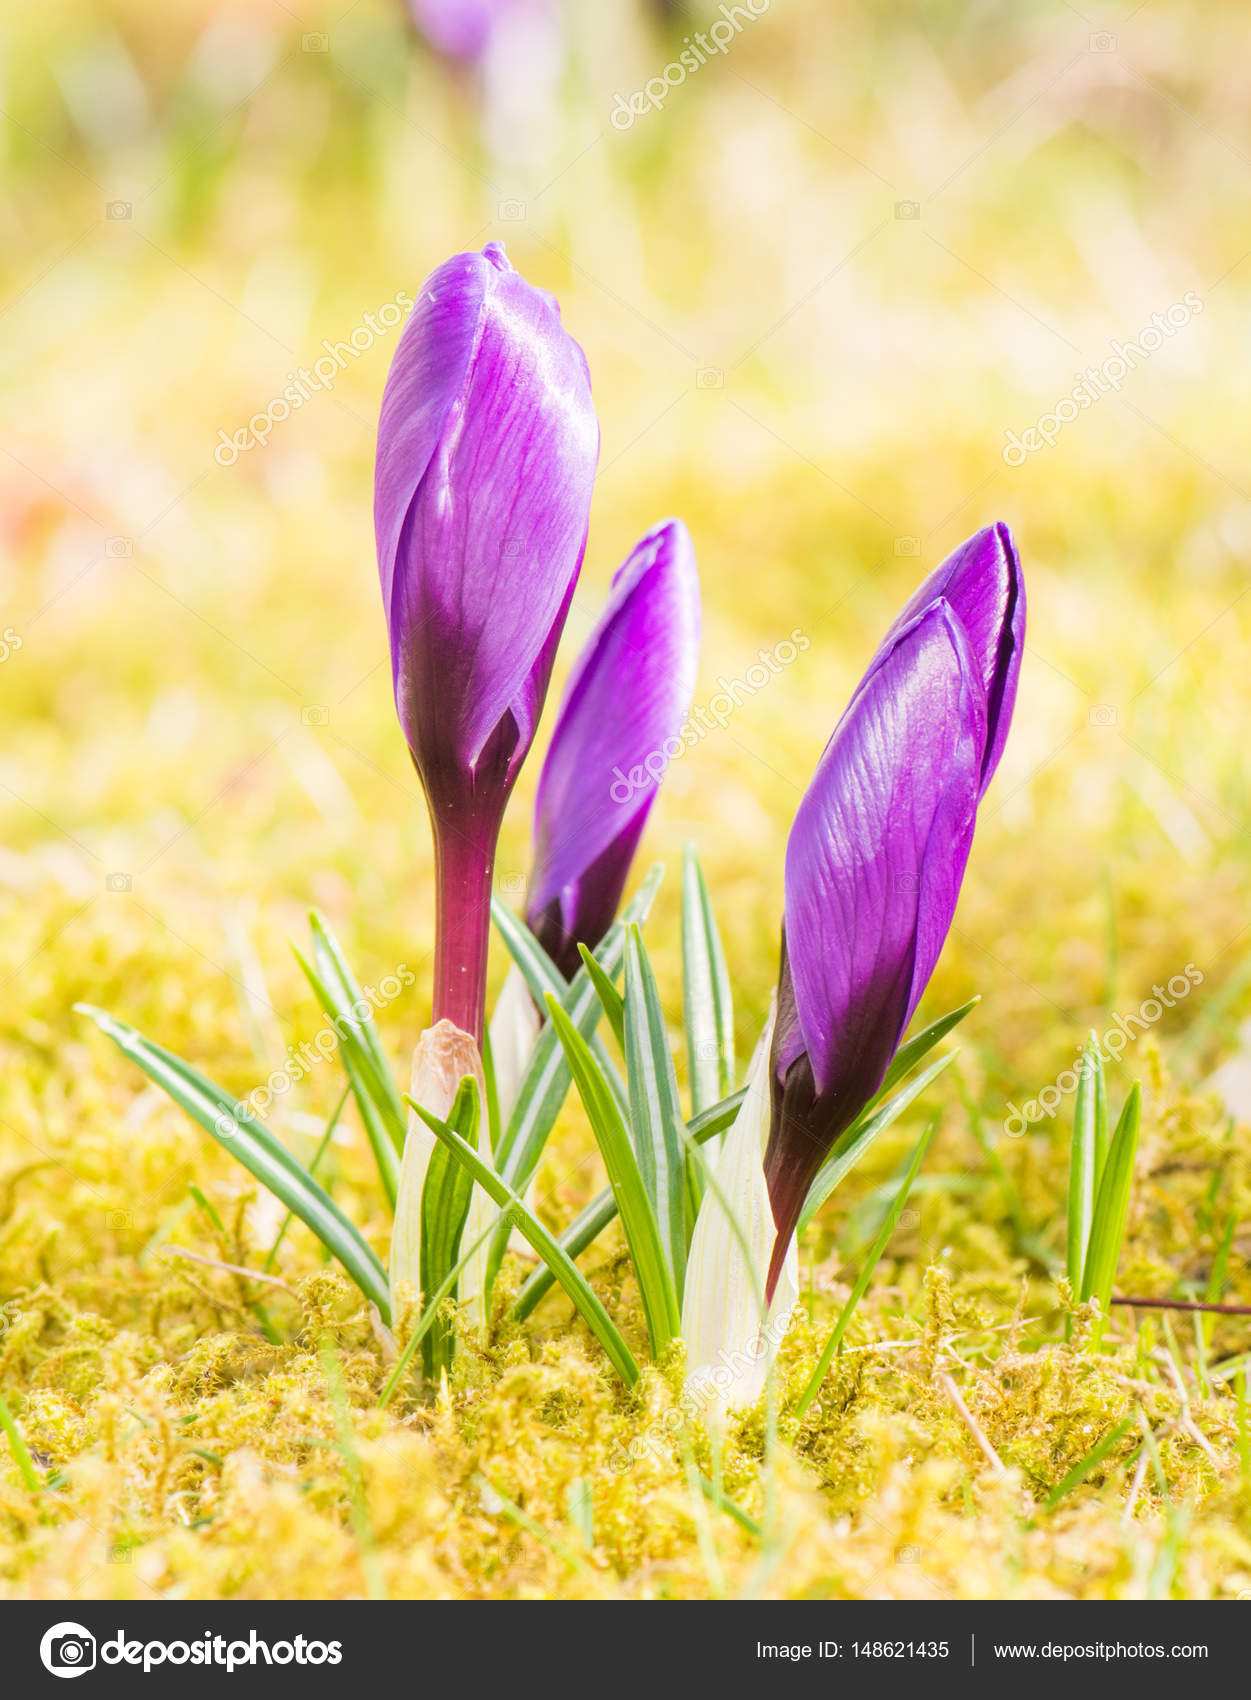 Purple crocus flower buds in spring stock photo manfredxy 148621435 closeup of purple crocus flower buds with selective focus and shallow depth of field photo by manfredxy mightylinksfo